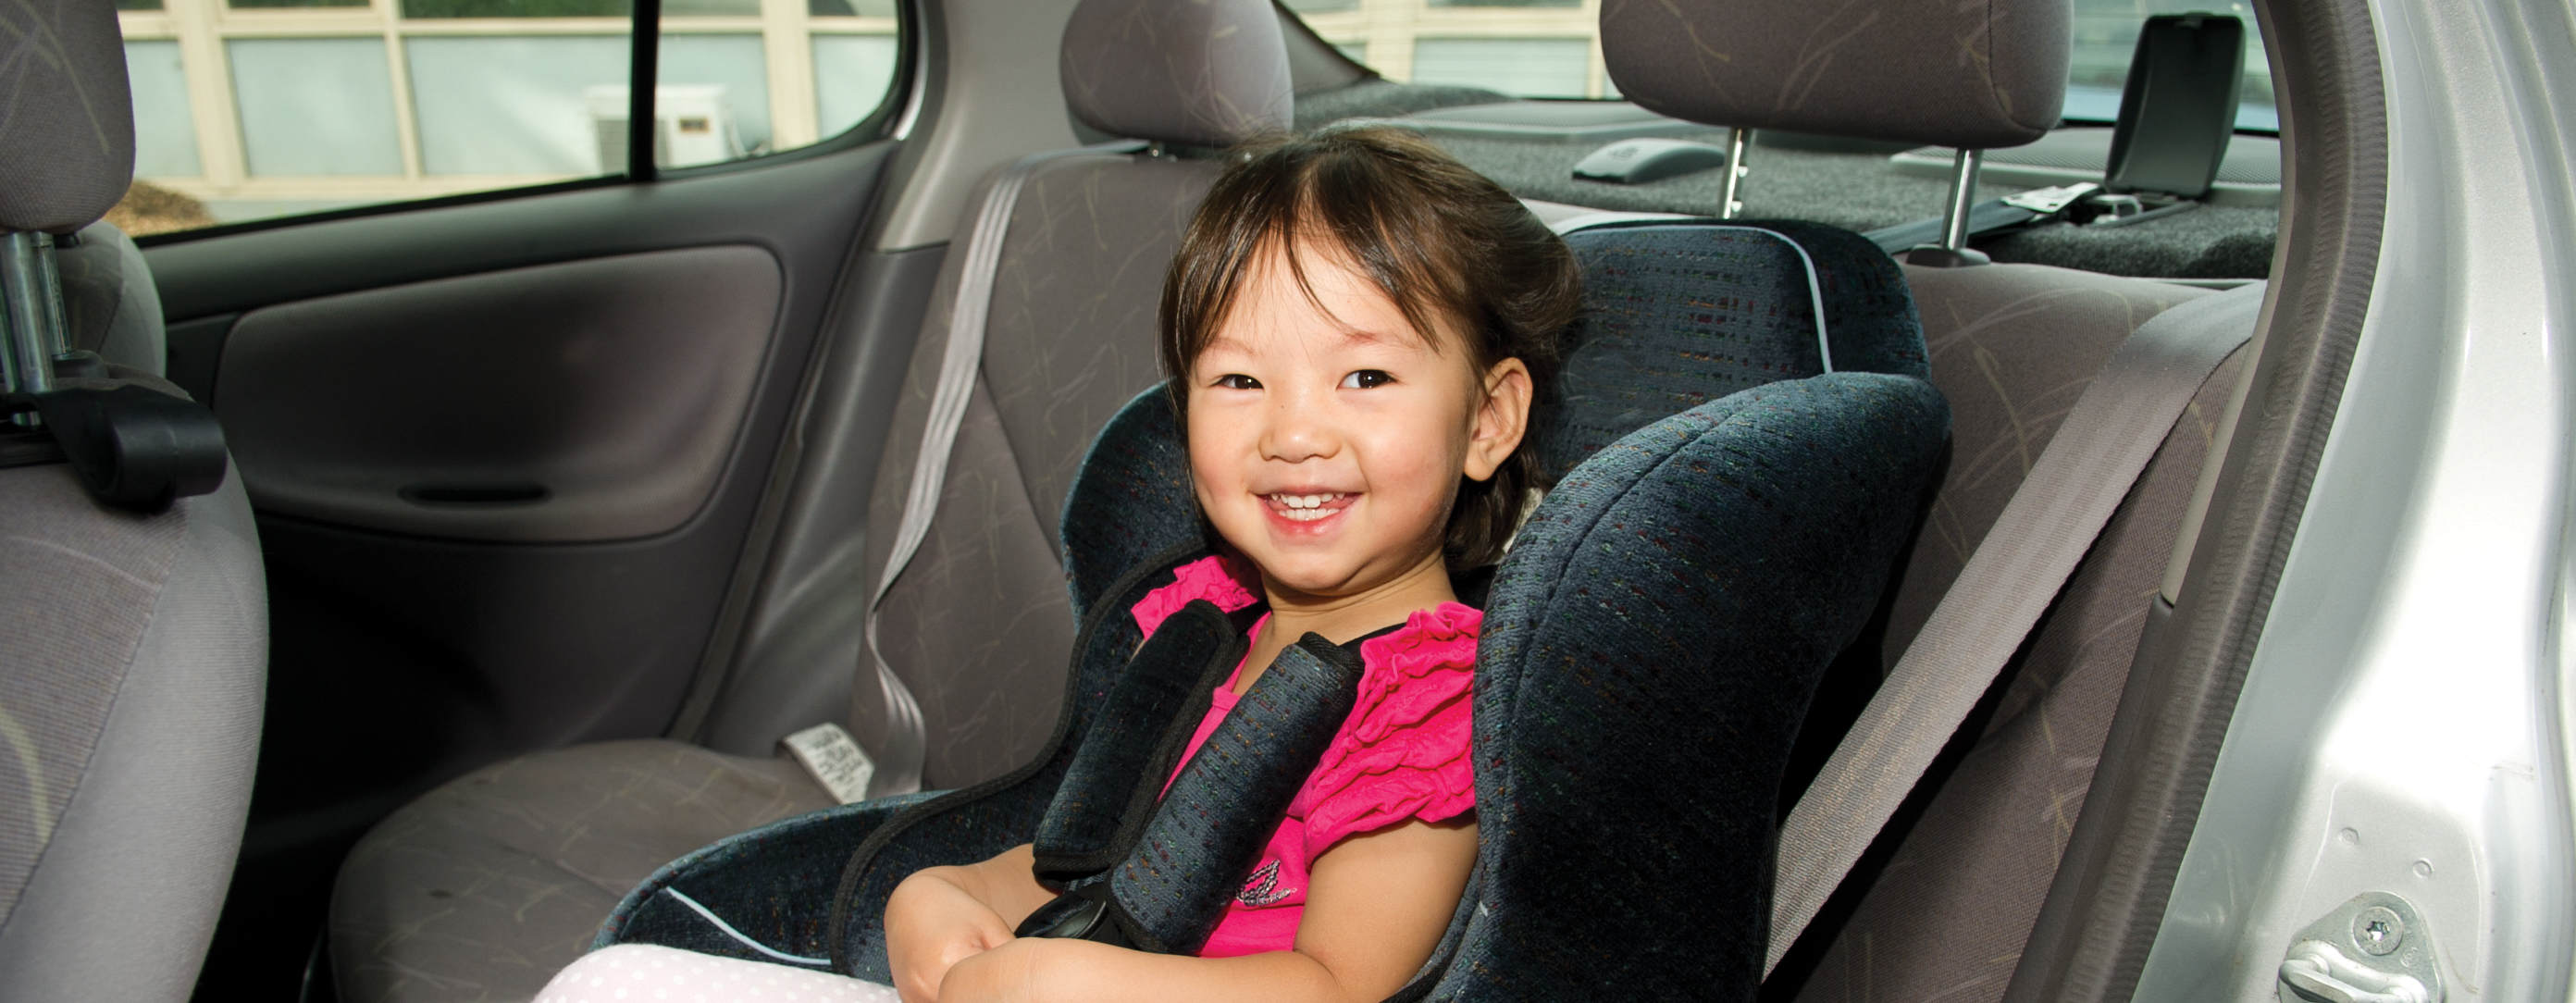 Young girl in rear child restraint seat